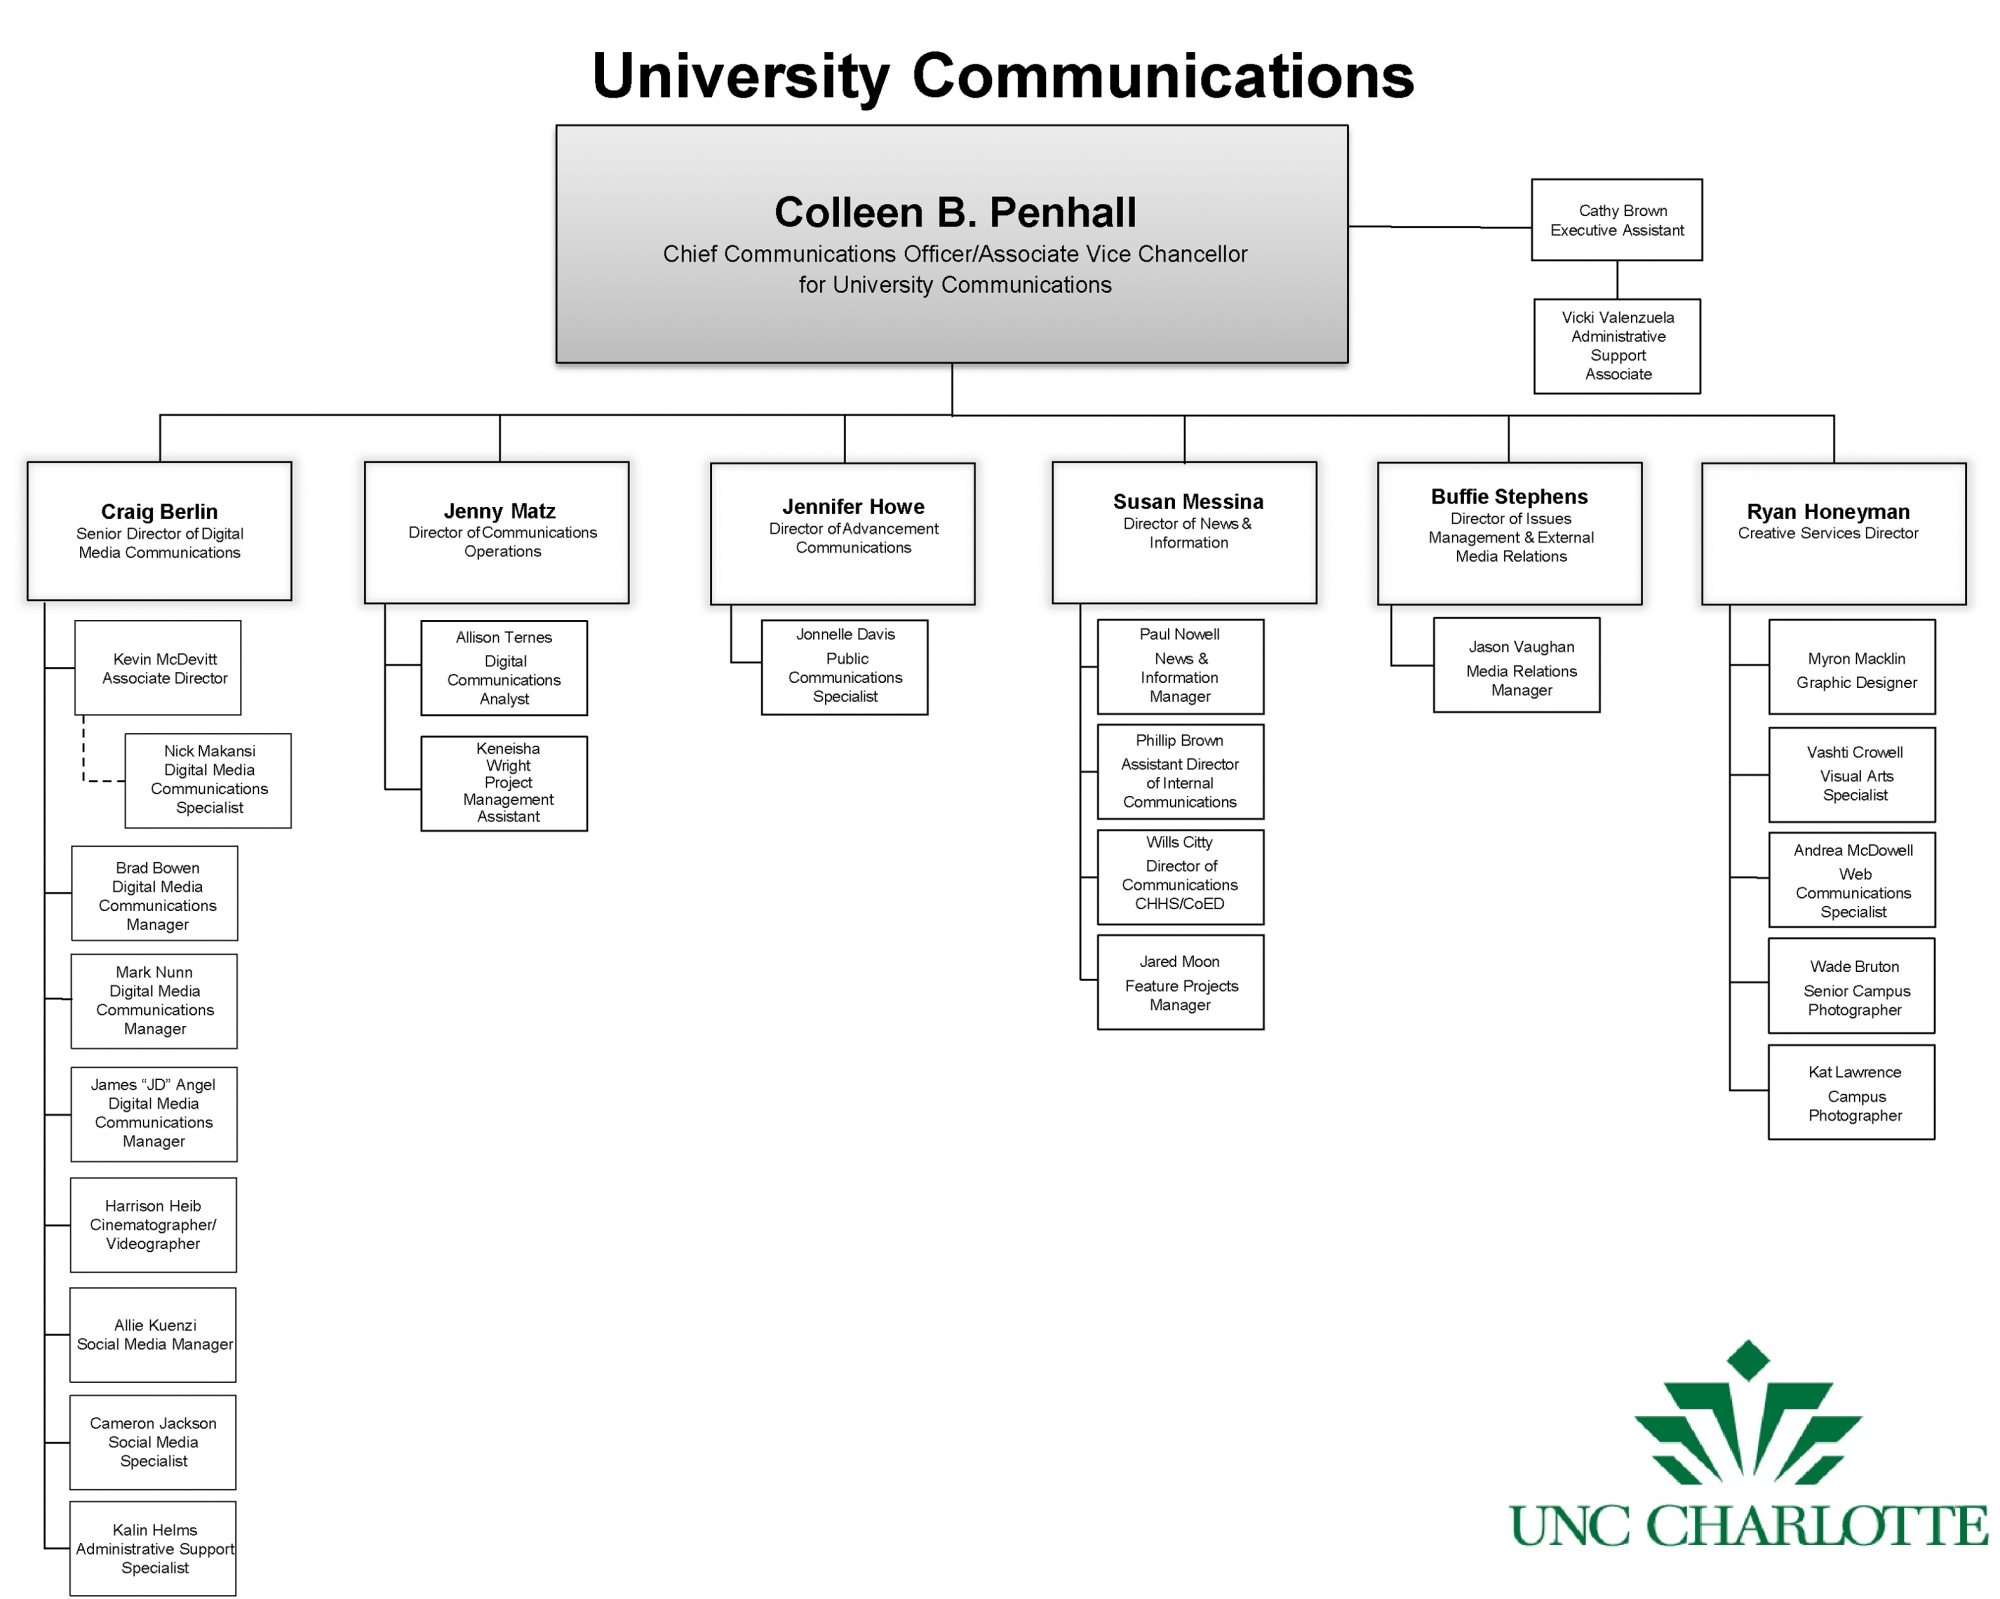 University Communications Organizational Chart